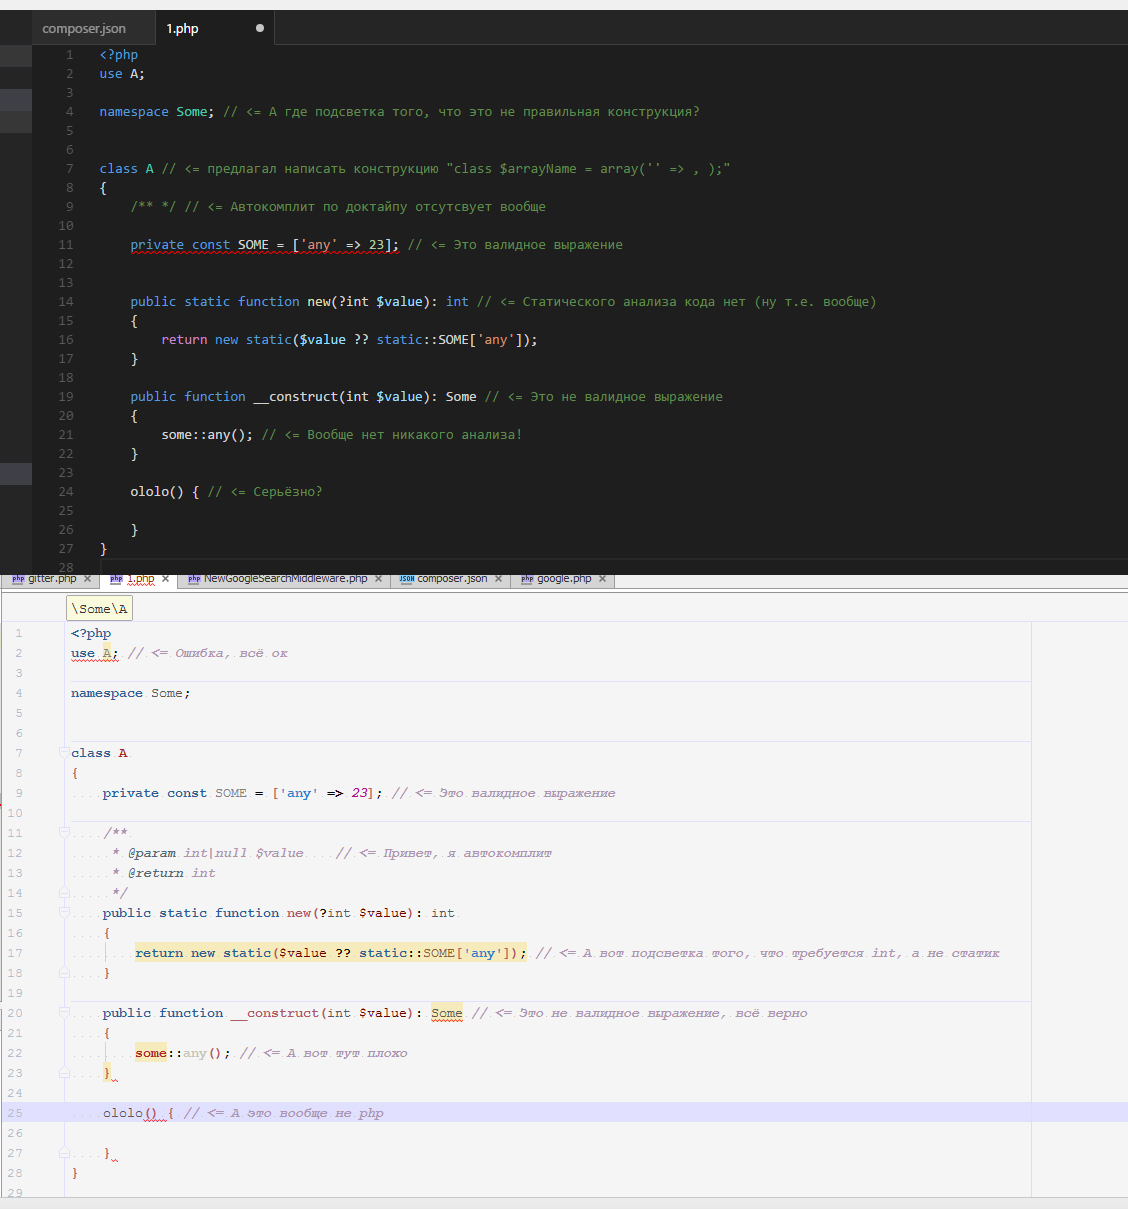 Отладка php в Visual Studio Code (Xdebug, Windows) / Хабр